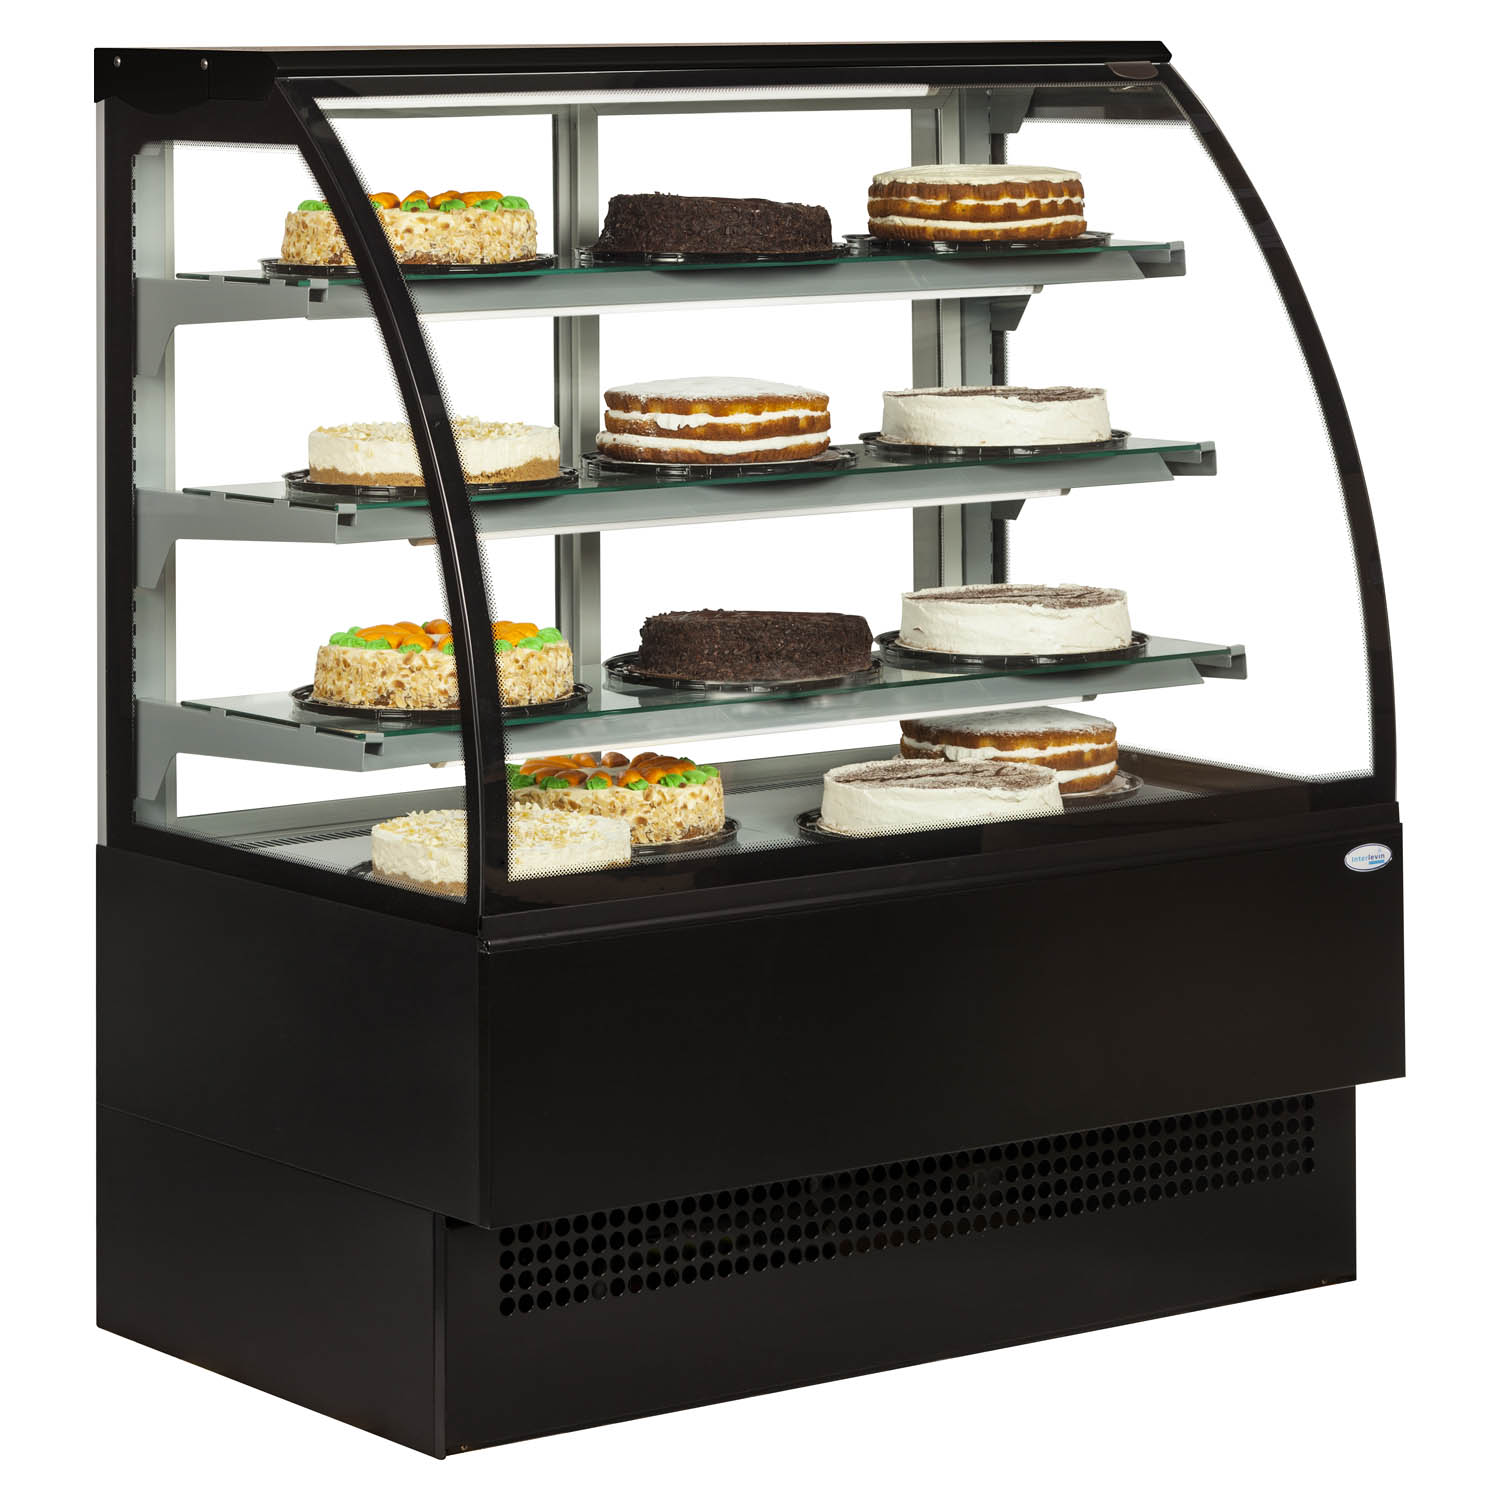 Interlevin Italia Range EVO1200 B Patisserie Display Cabinet